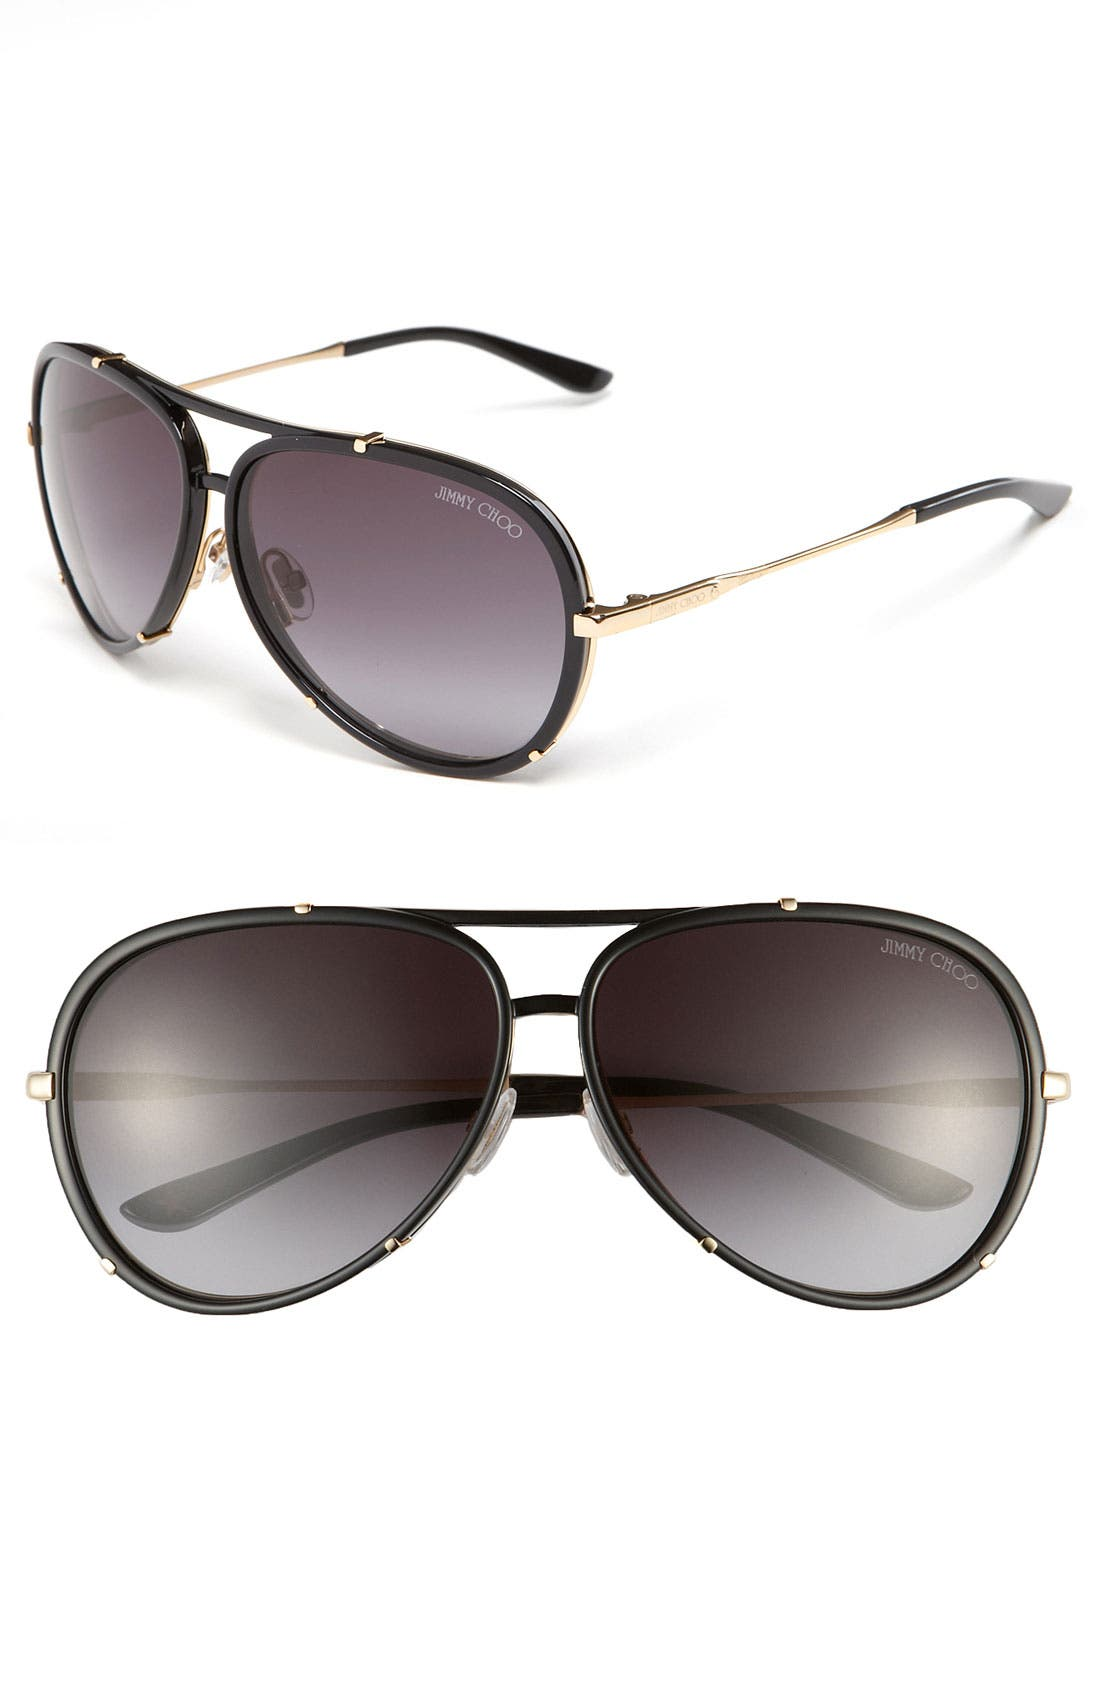 Alternate Image 1 Selected - Jimmy Choo 'Terrence' 62mm Aviator Sunglasses